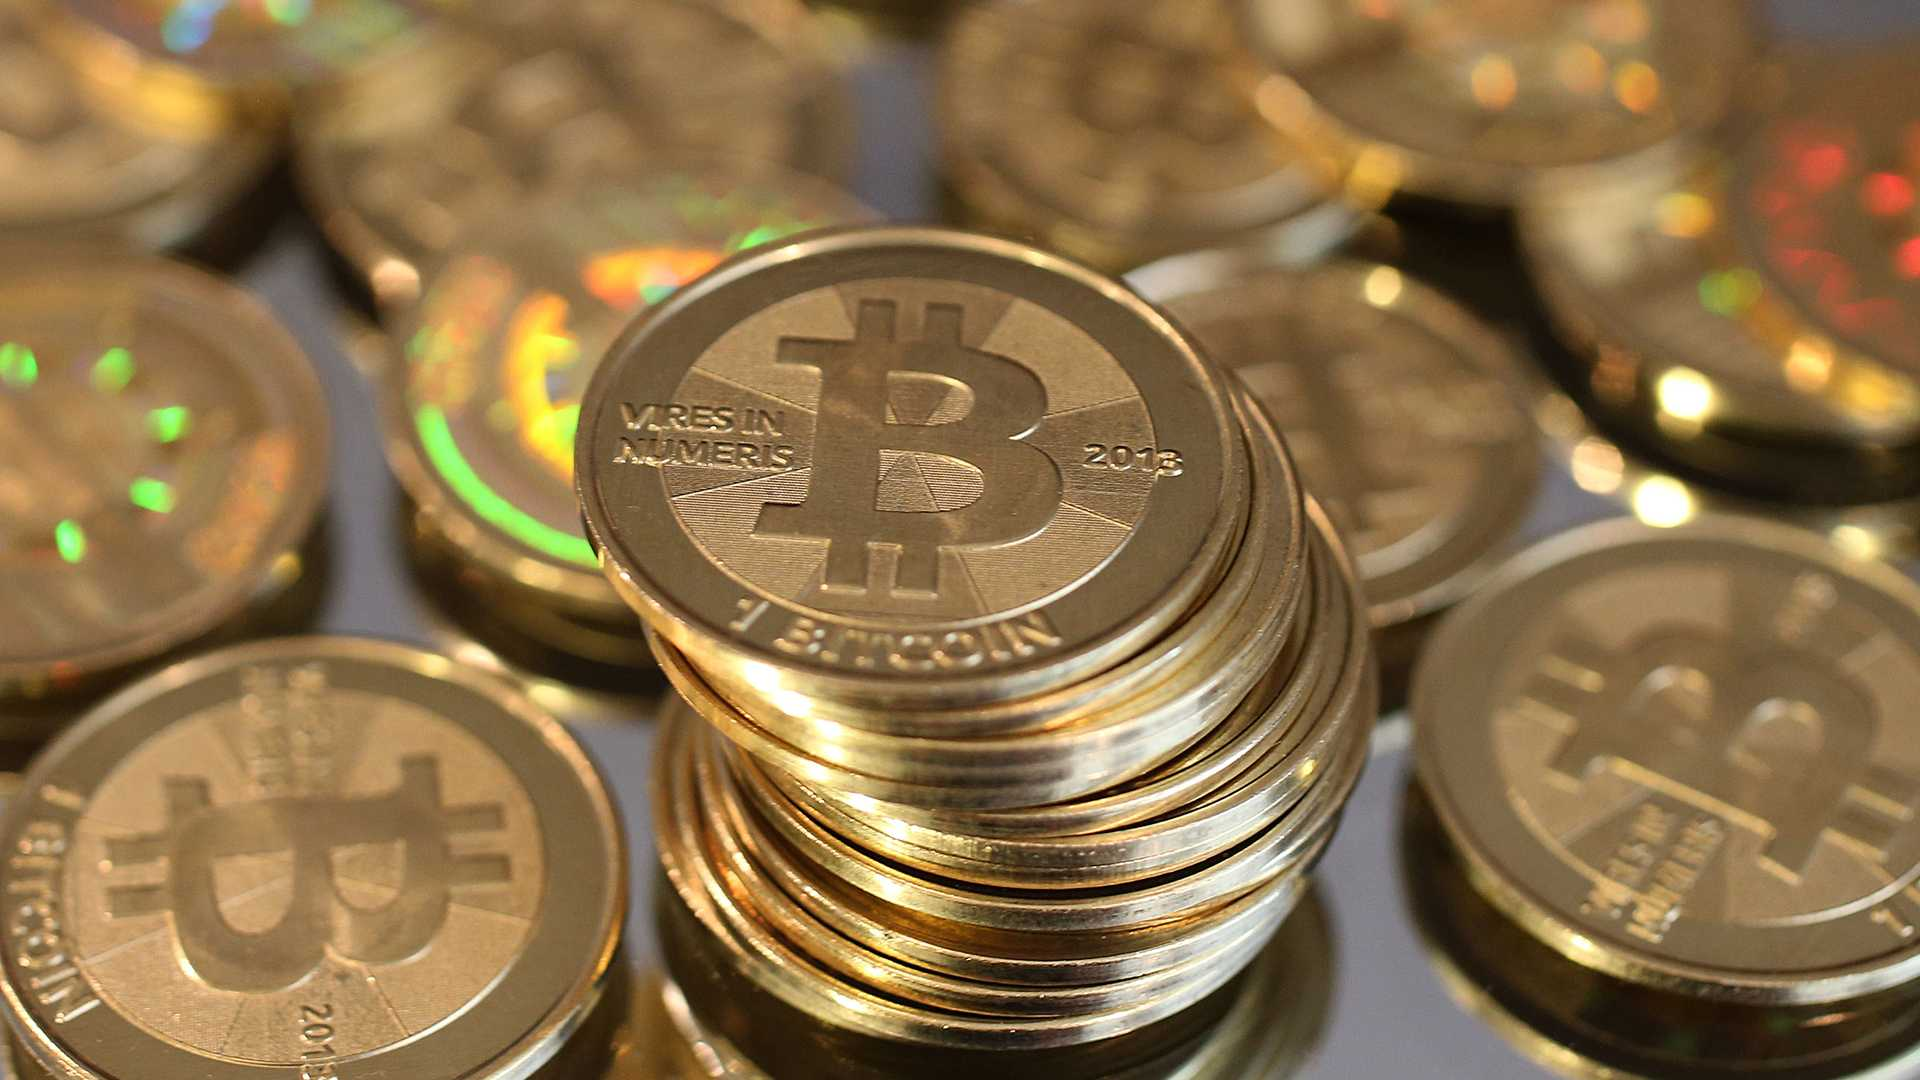 OPINION: #BITCOIN #cryptocurrency a ponzi scheme, a scam